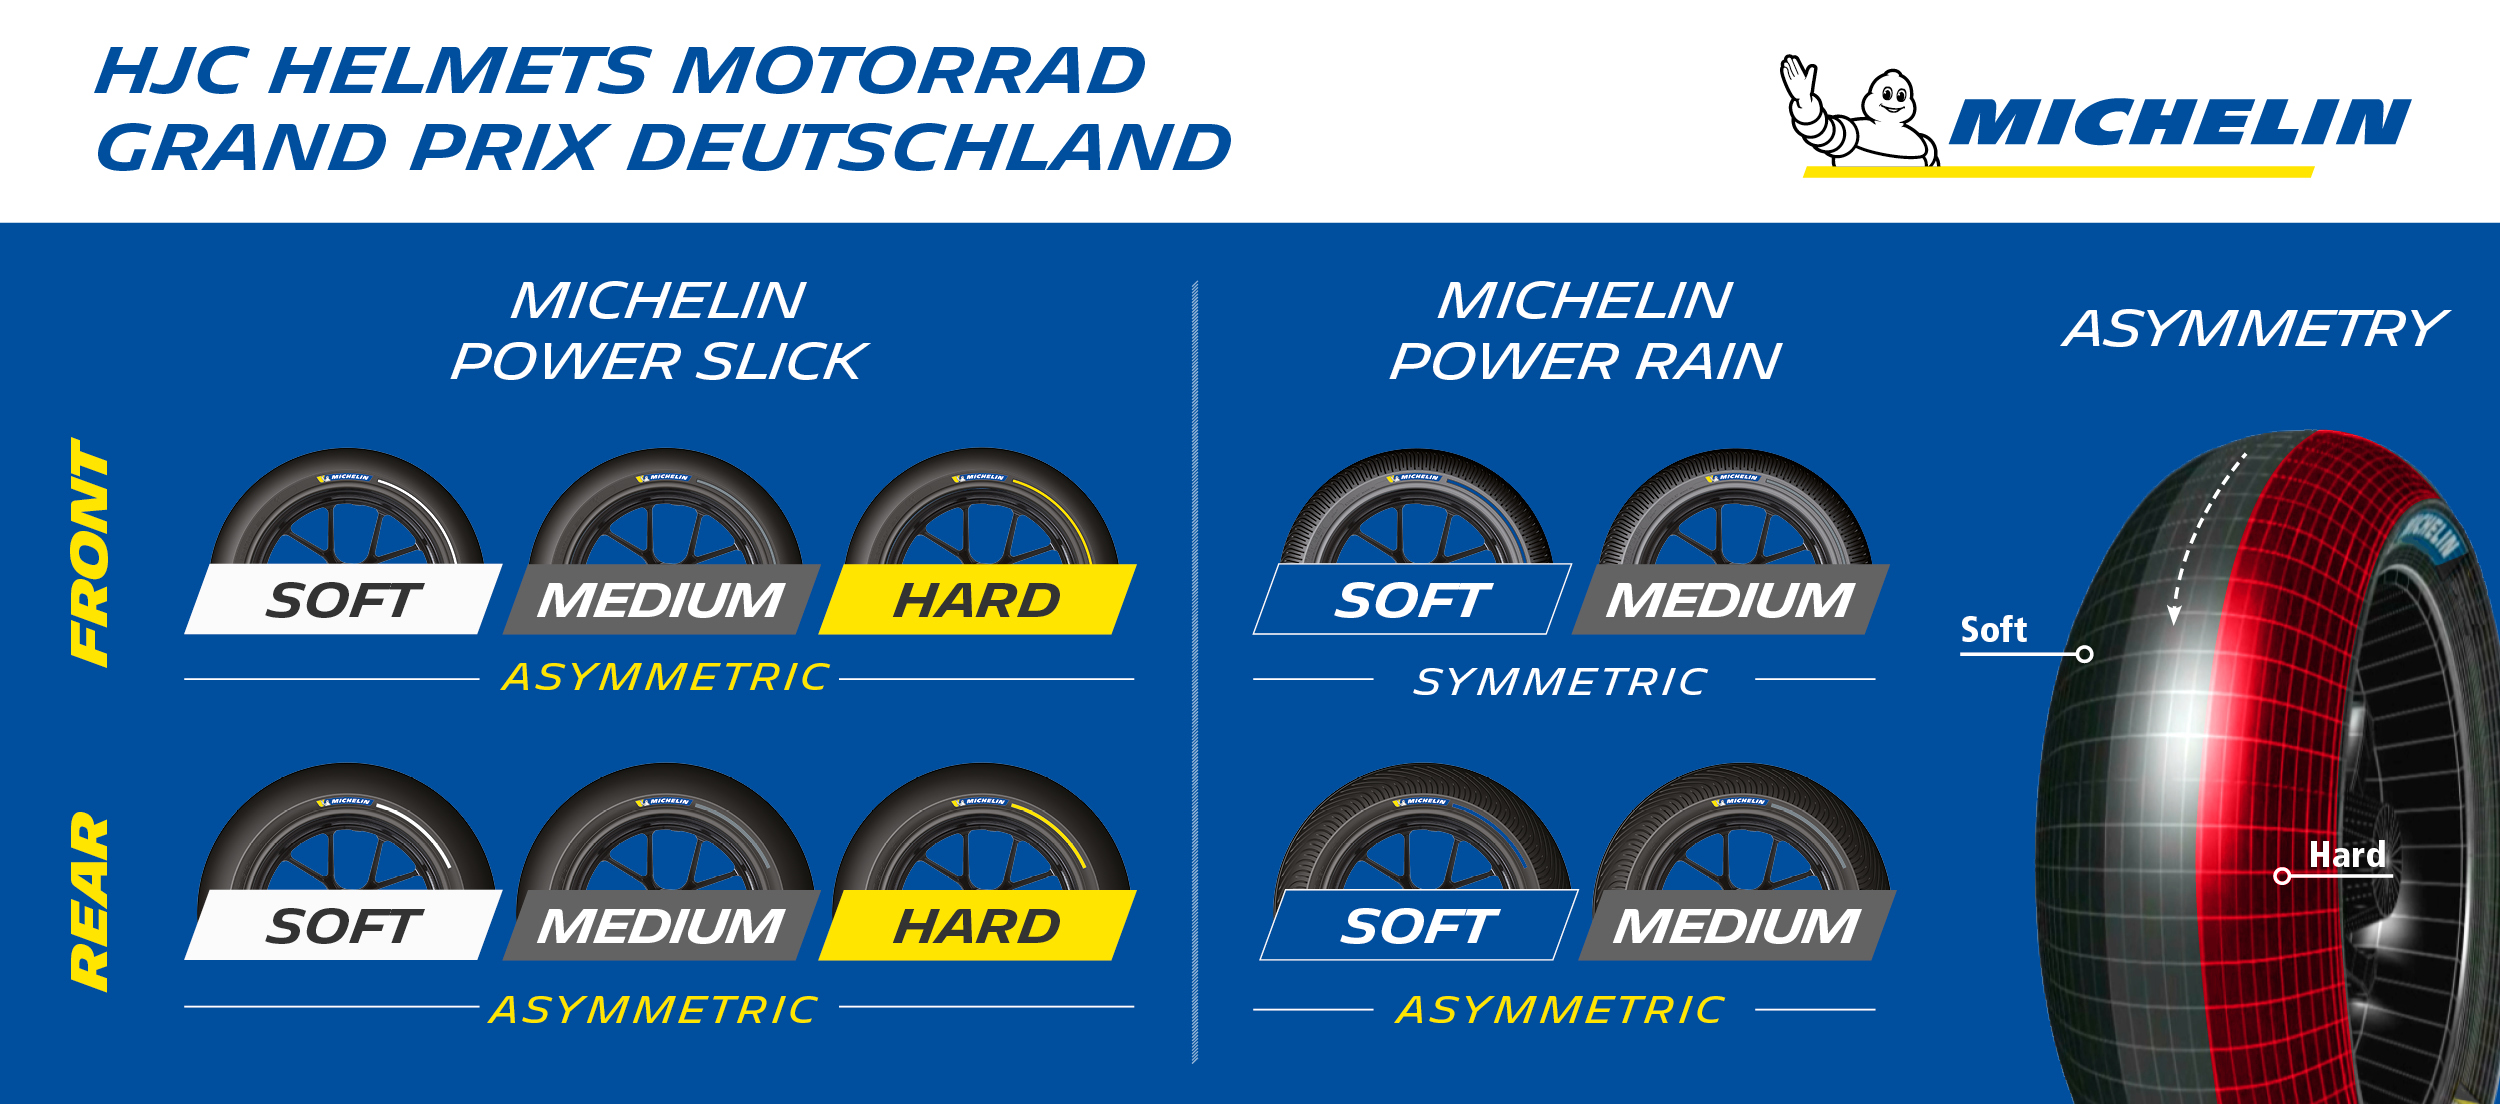 Michelin_GermanGP_TyreAllocation